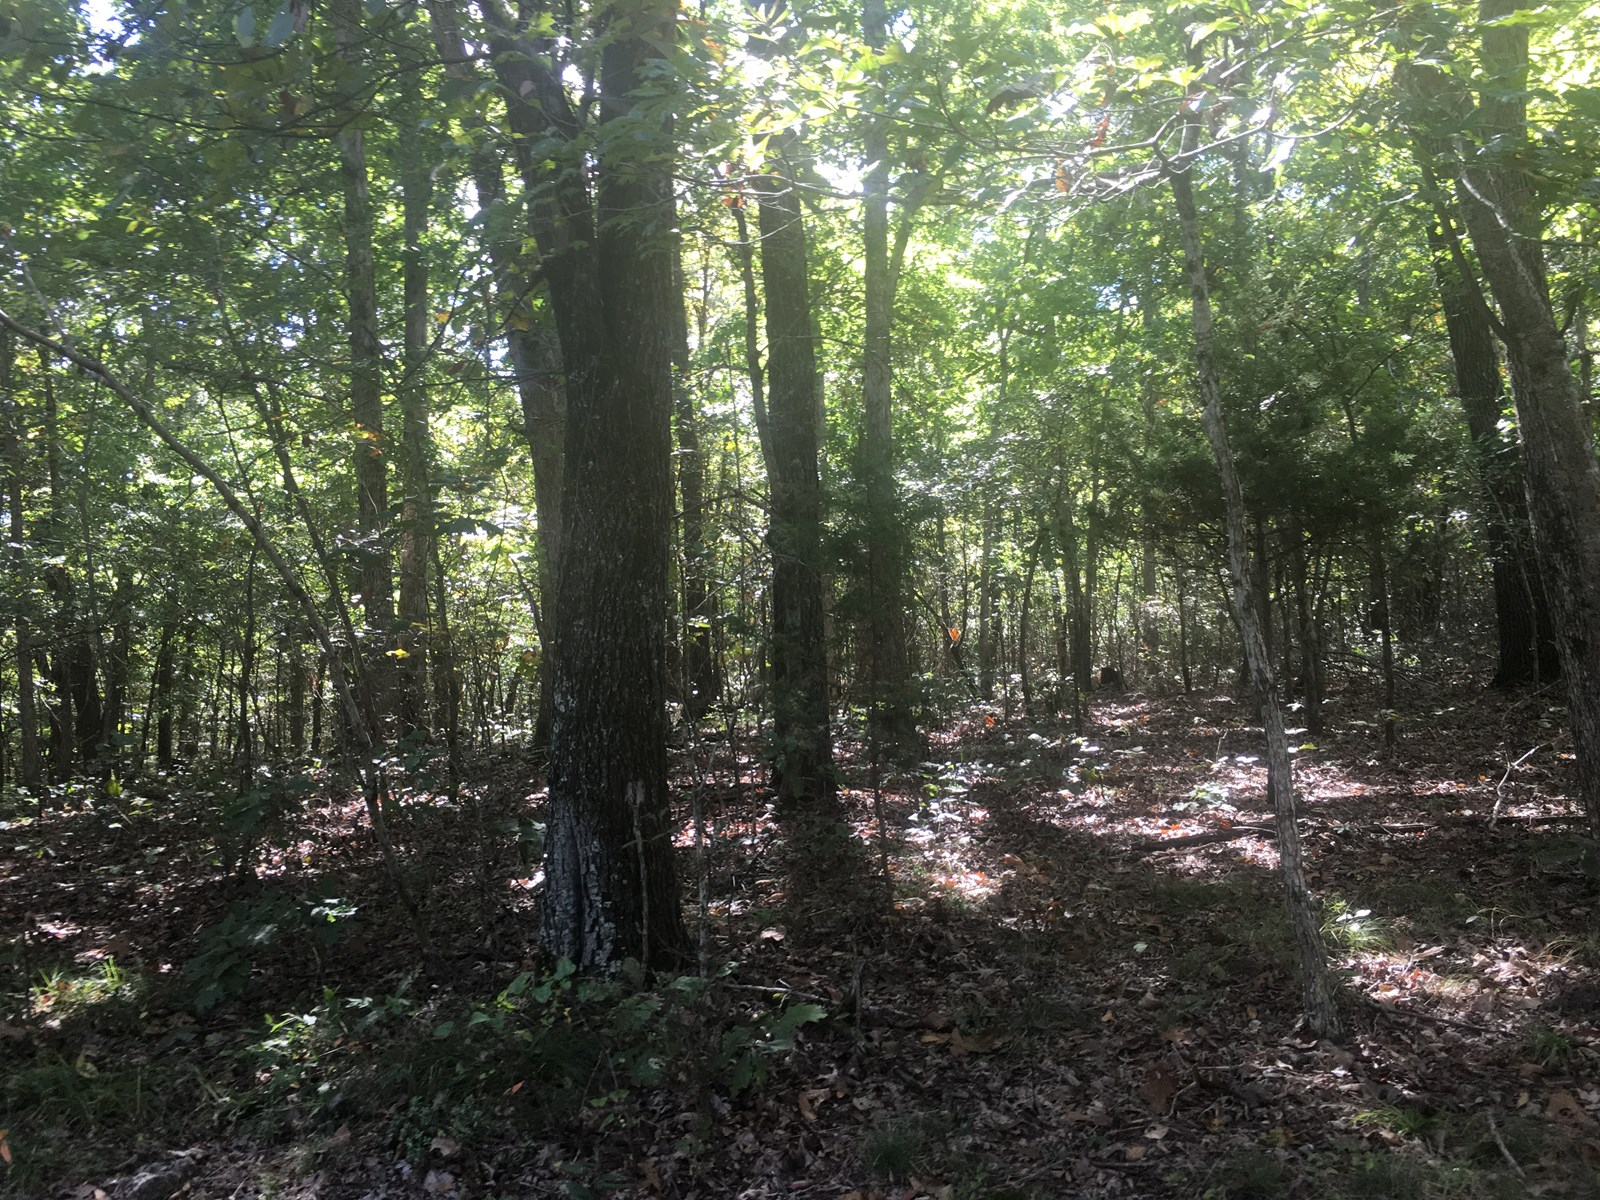 LAND FOR SALE IN NORTHEAST ARKANSAS